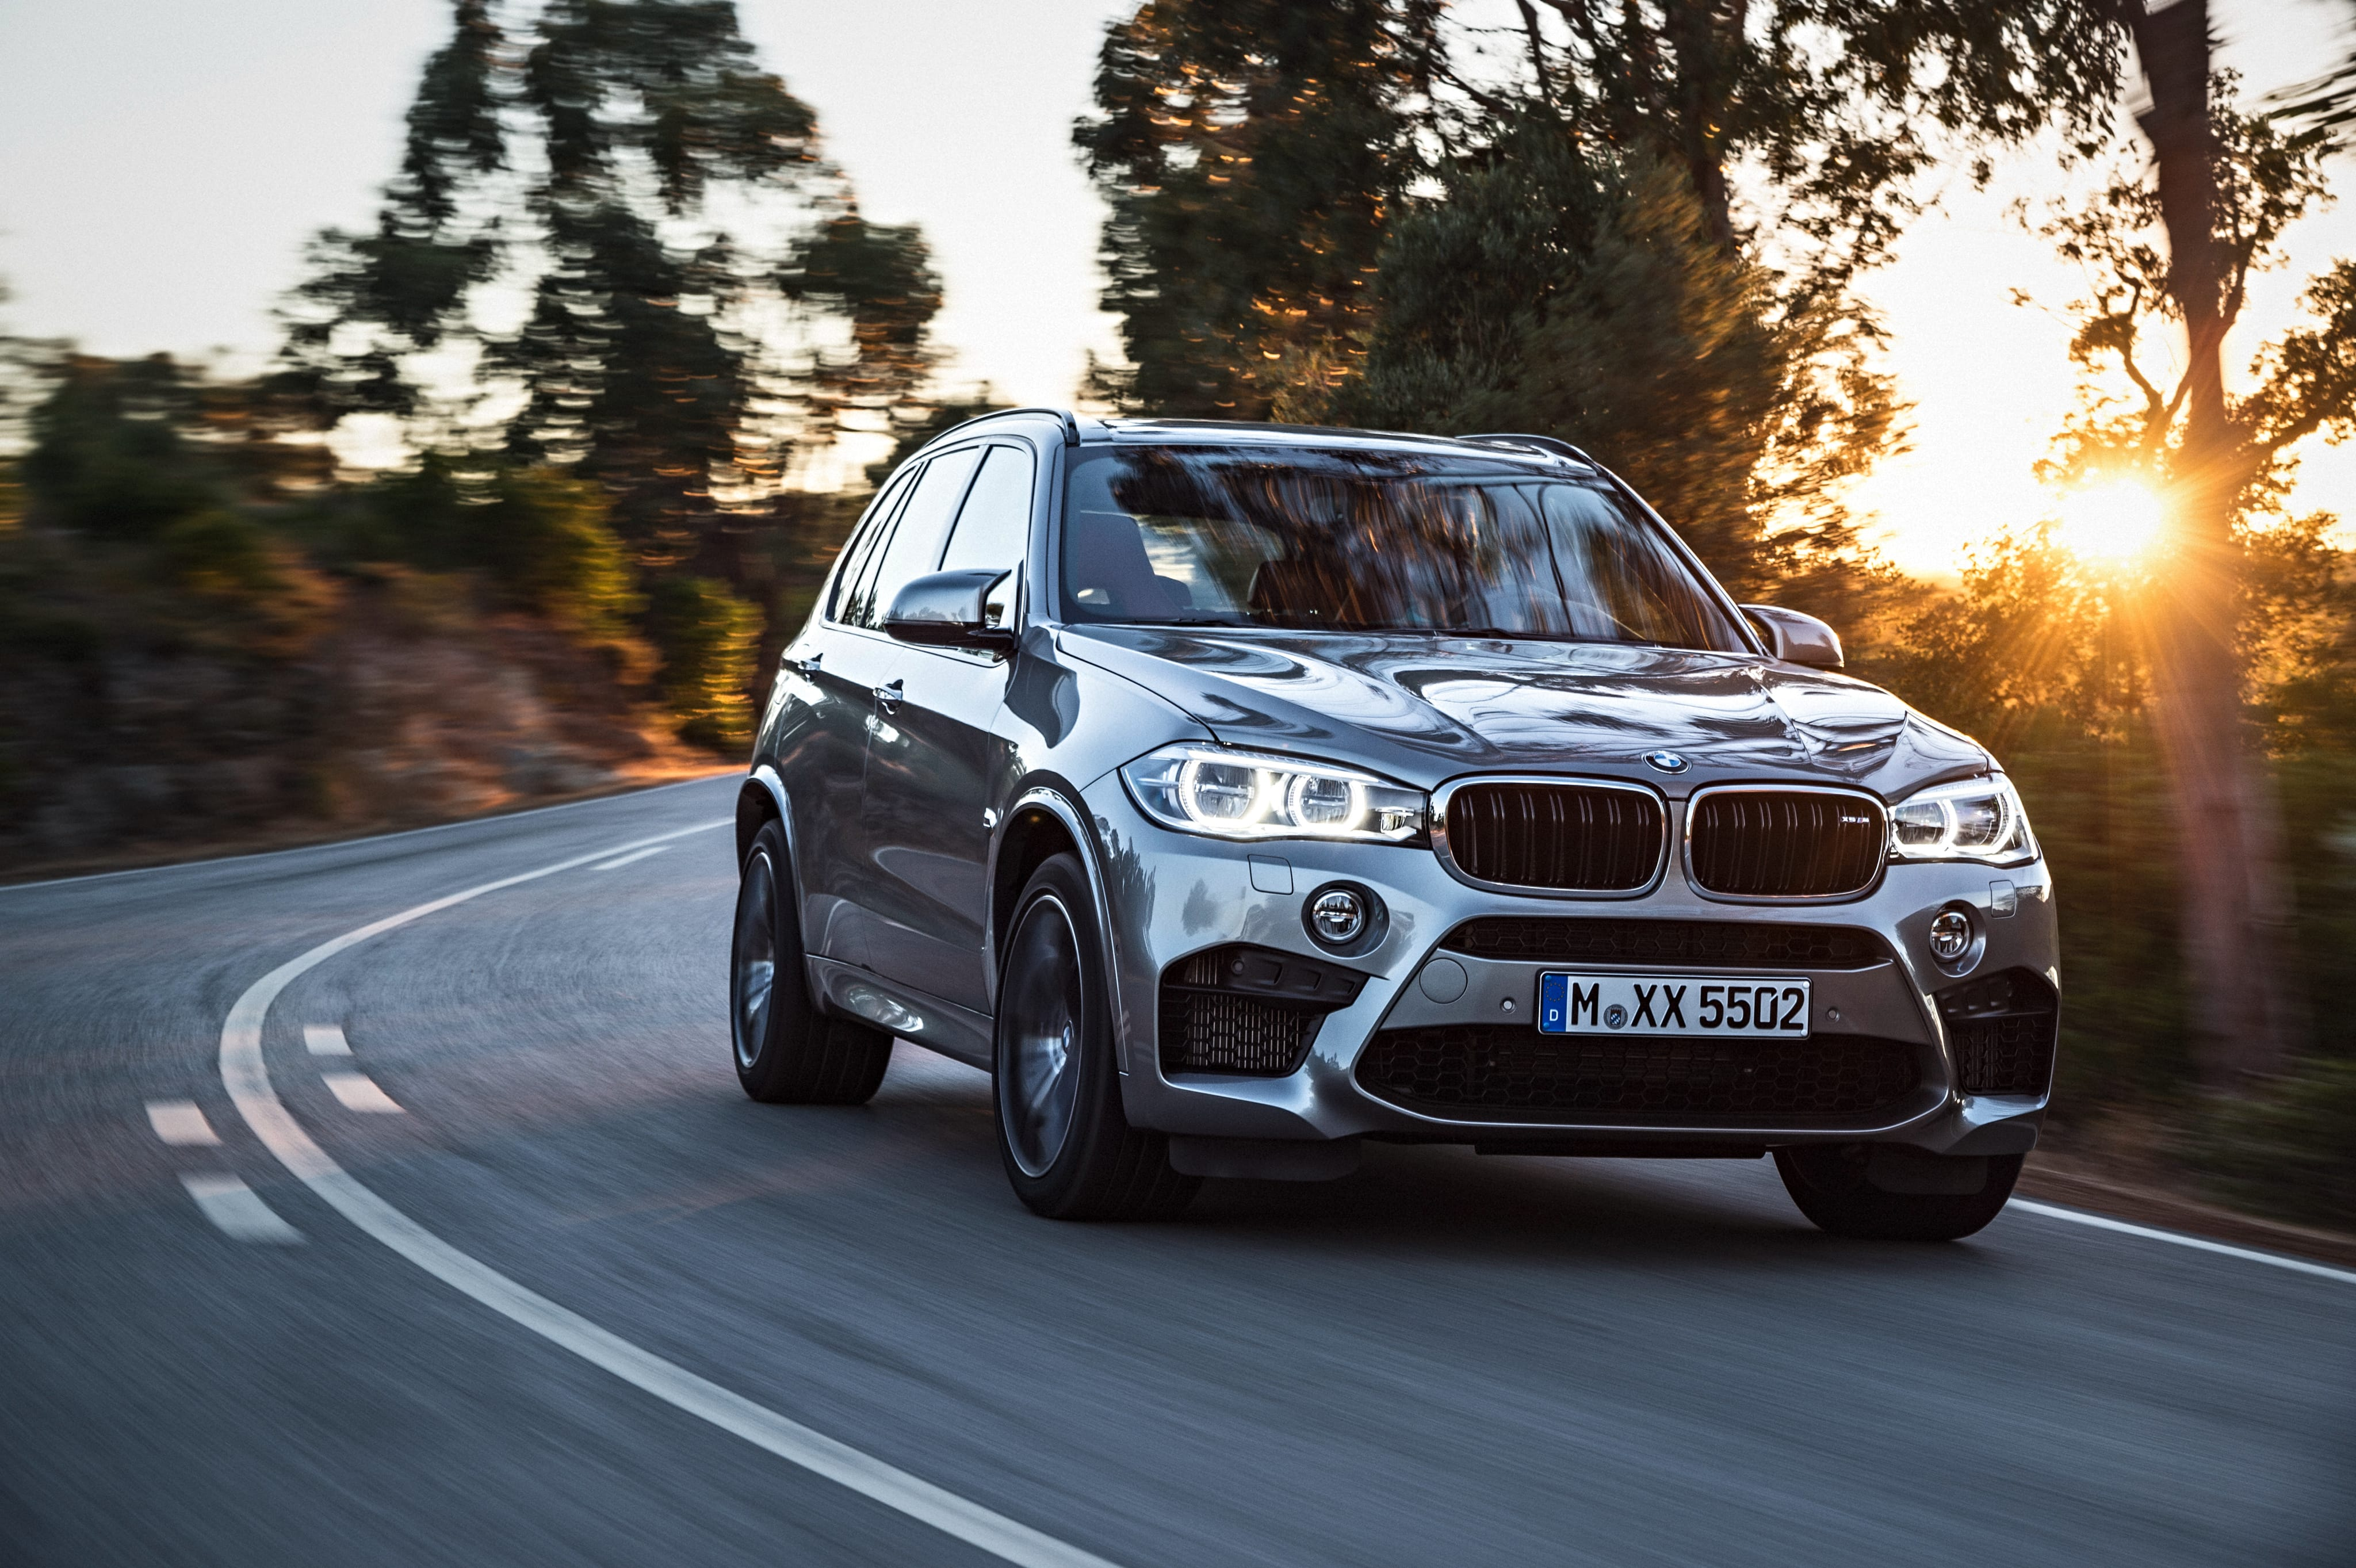 Bmw X5m F85 Hd Wallpapers 7wallpapers Net X5 Iphone 5